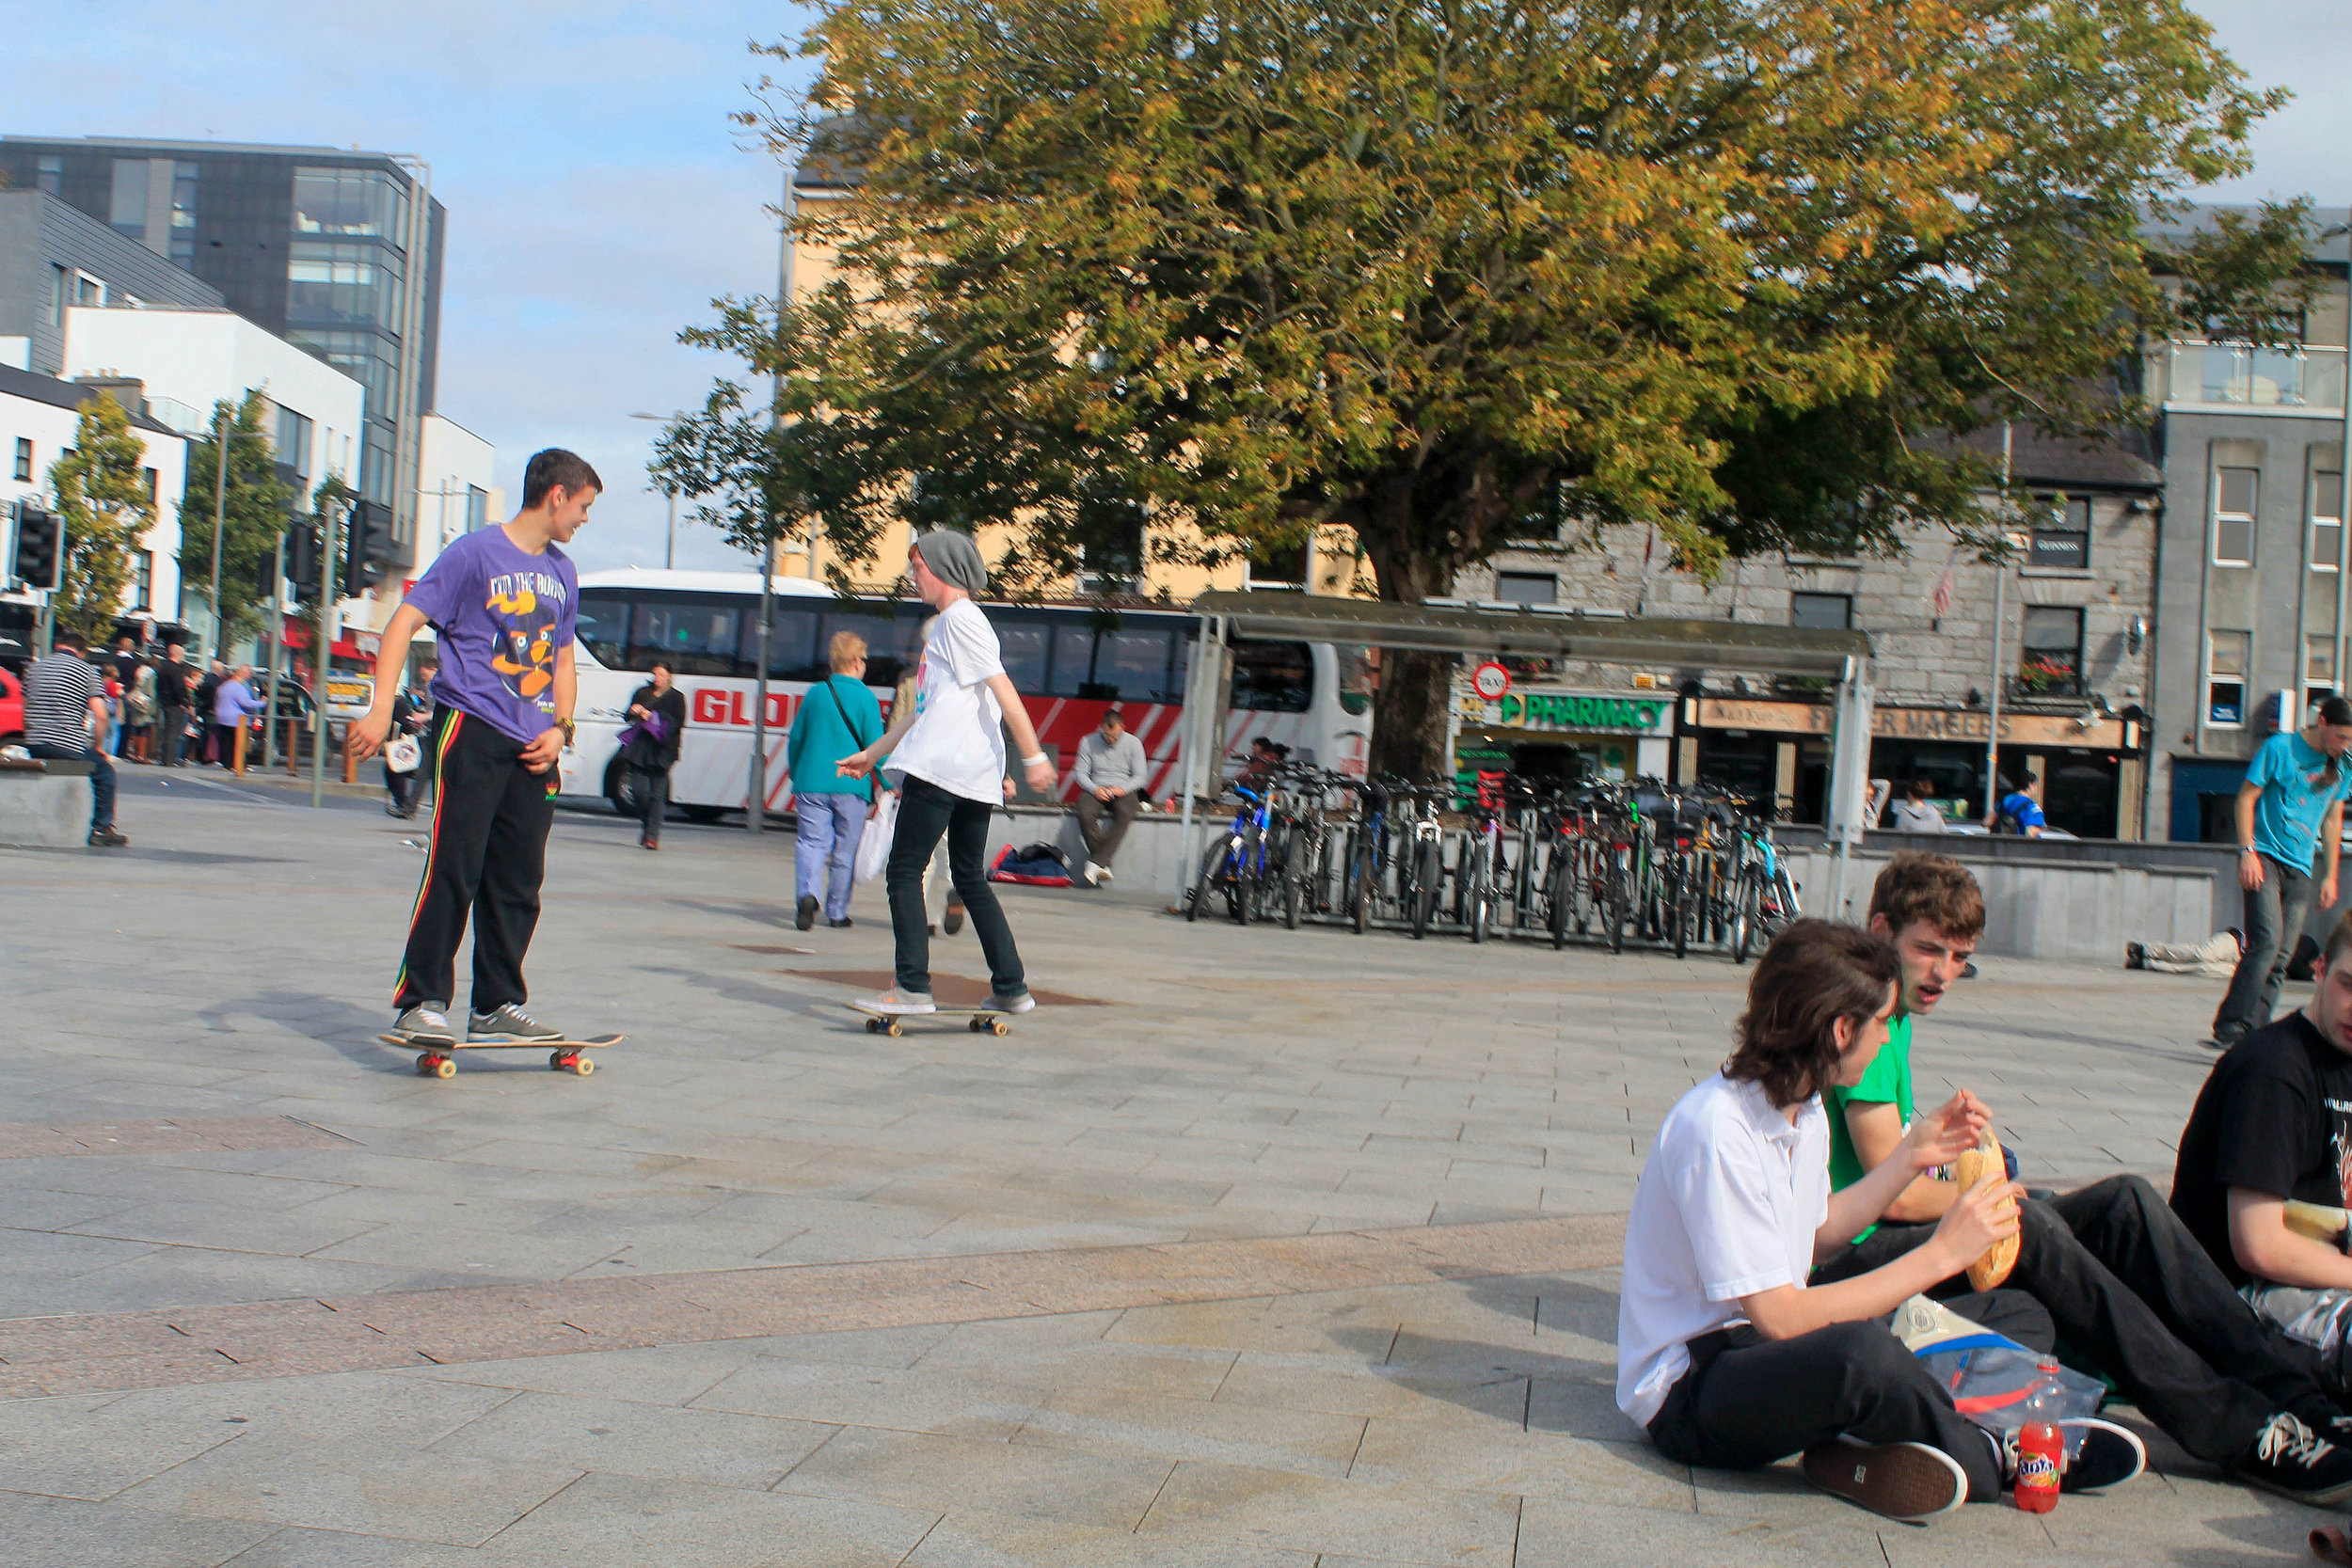 Teenagers skateboard in Galway's main meeting point, Eyre Square.